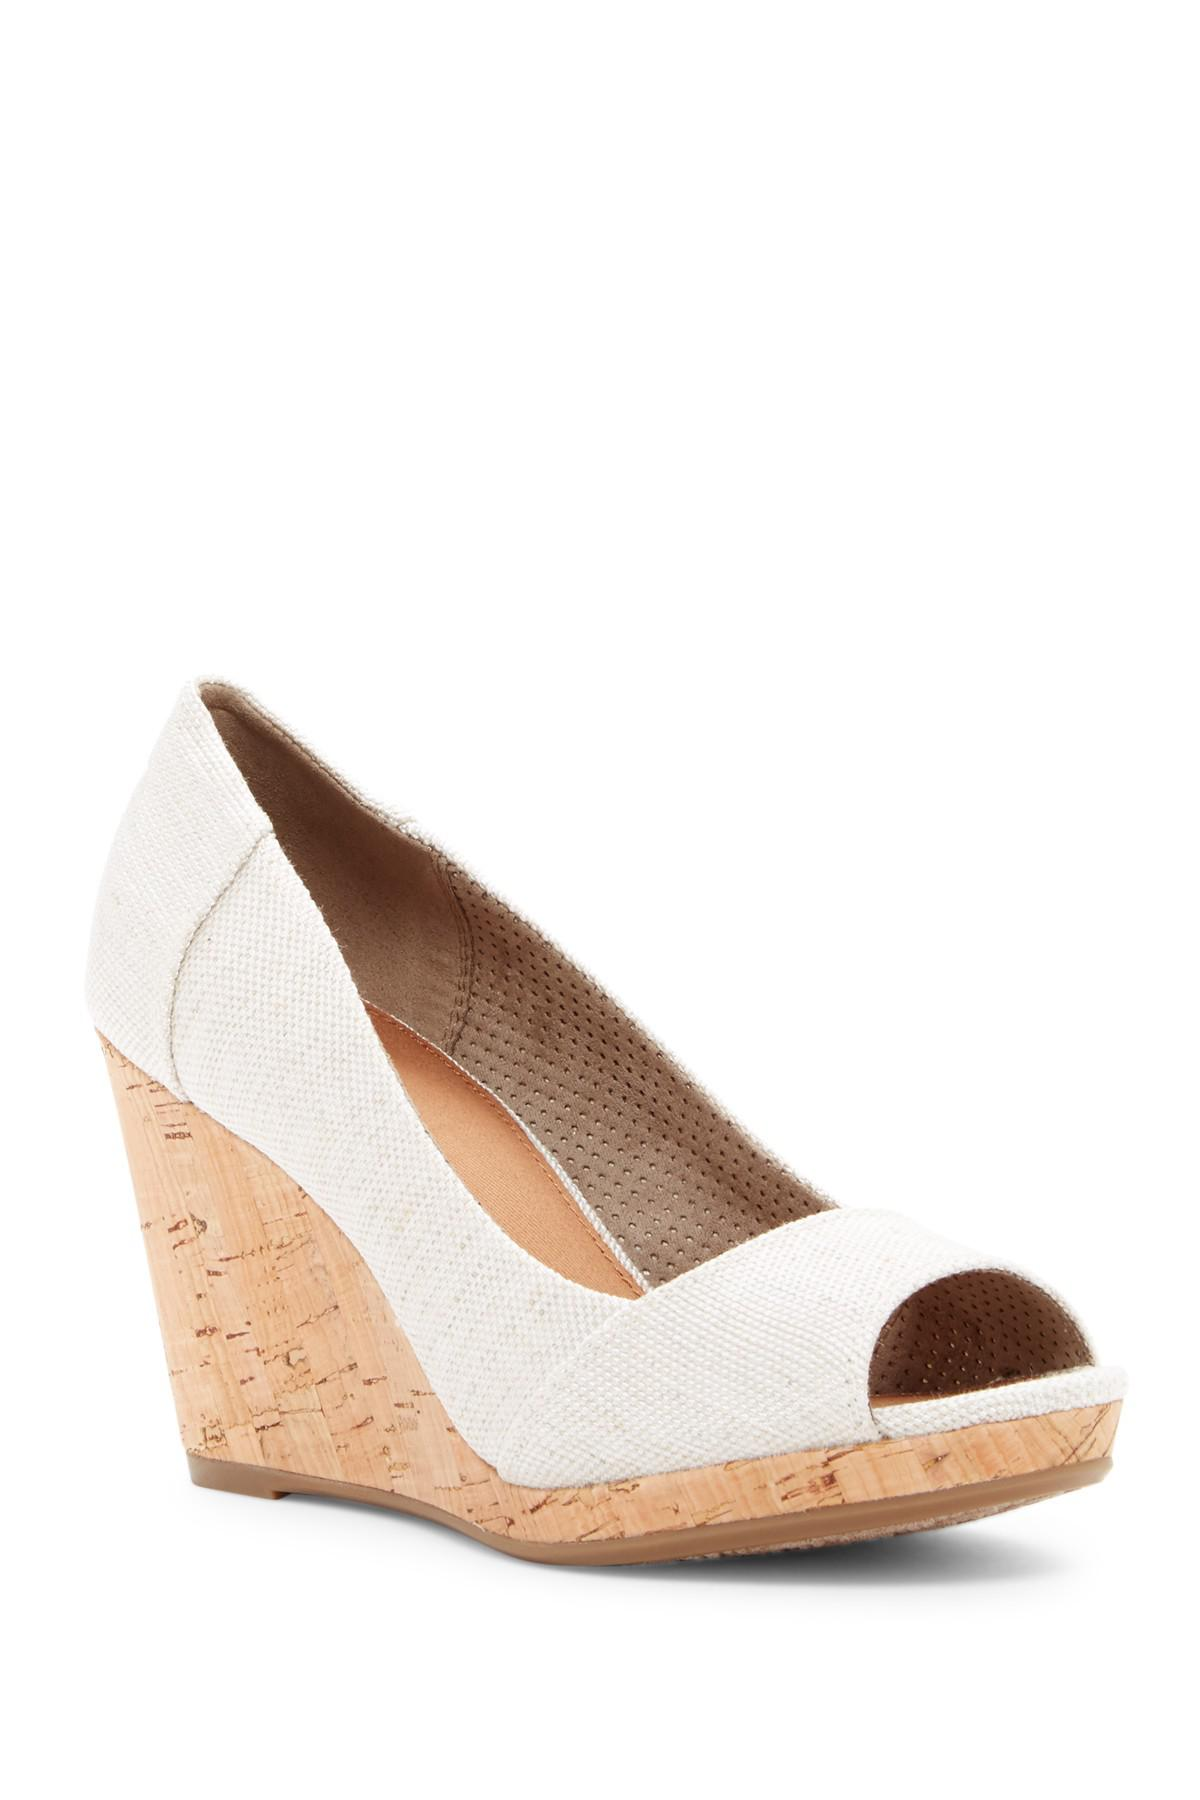 2d030164b11 Lyst - TOMS Stella Canvas Wedge Sandal in Natural